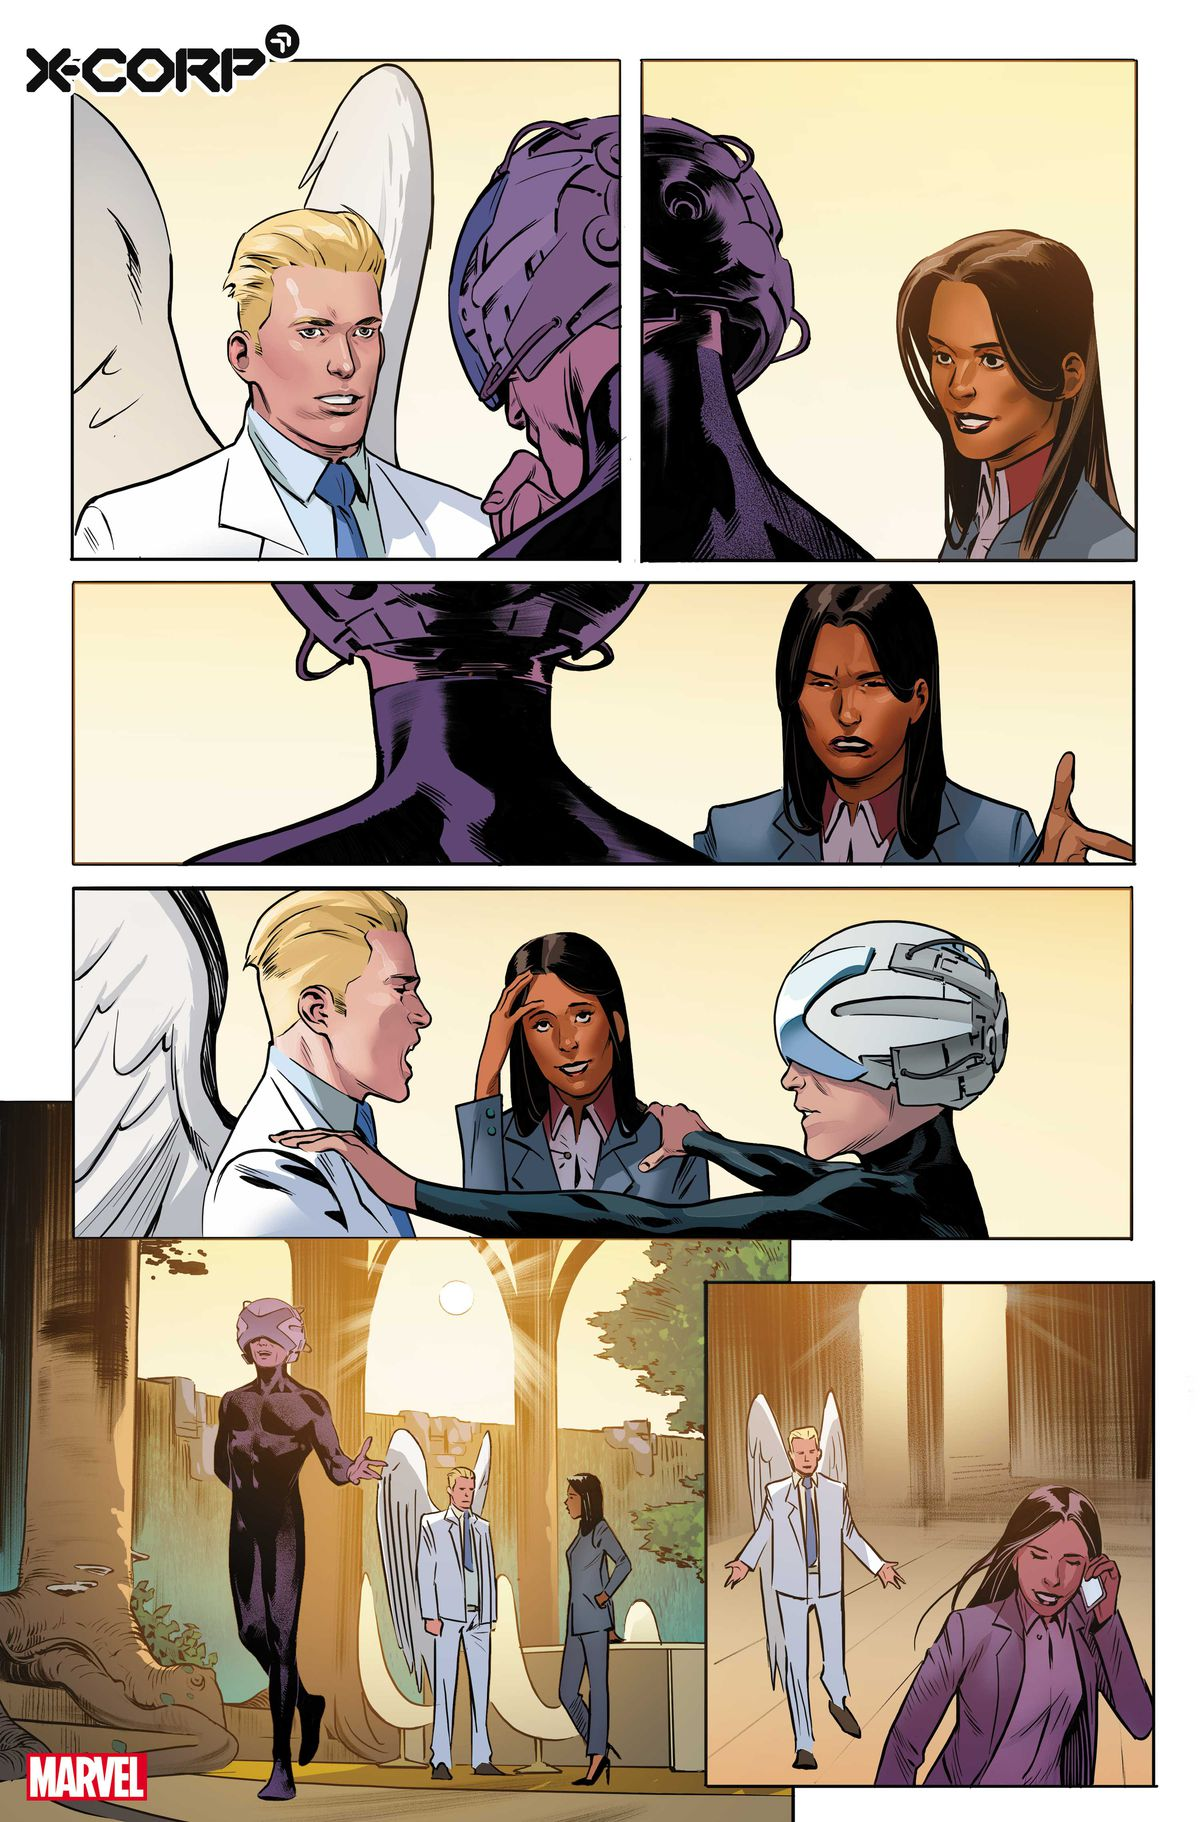 Angel, Monet St. Croix, and Charles Xavier talk to one another in preview art for X-Corp #1, Marvel Comics (2021)